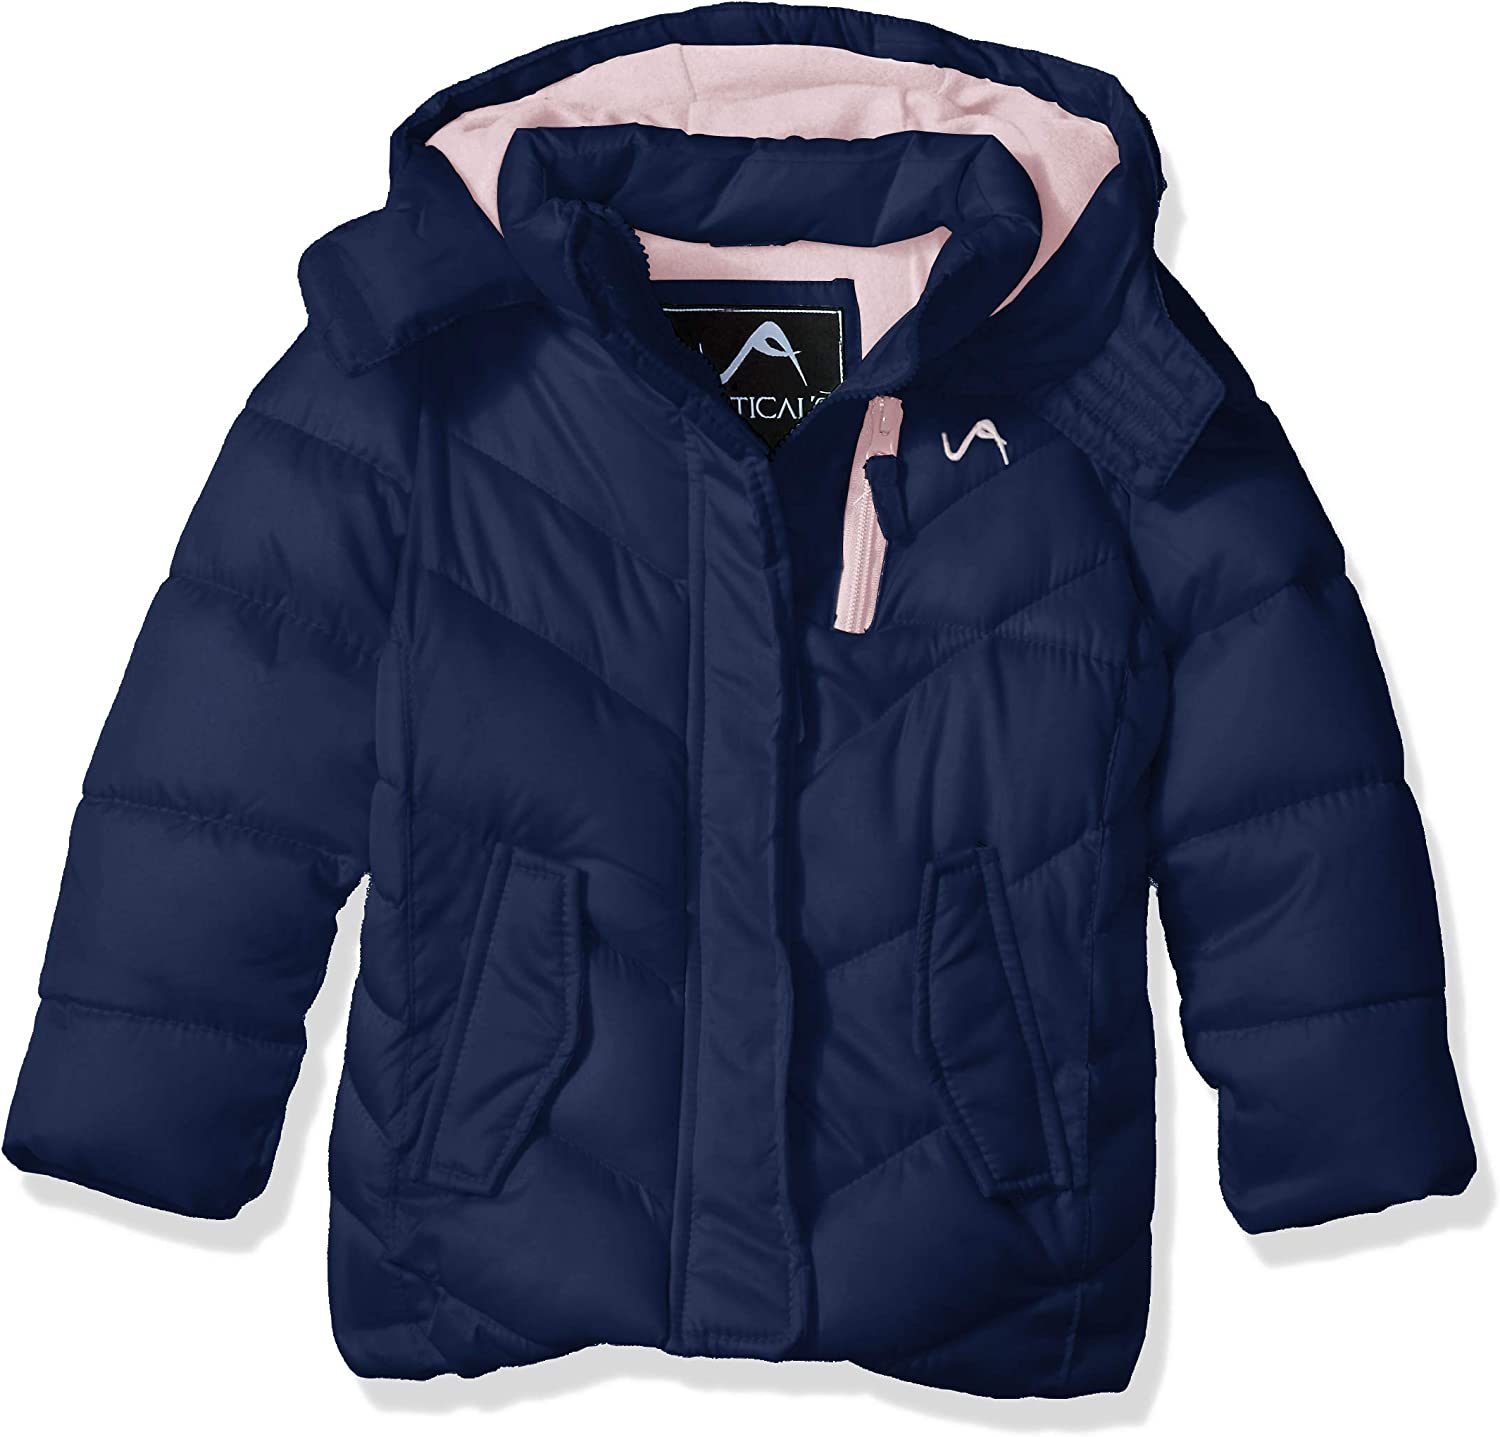 Vertical '9 ! Super beauty product restock quality top! Women's Big Girls' Jacket More Availa Bubble Styles Time sale